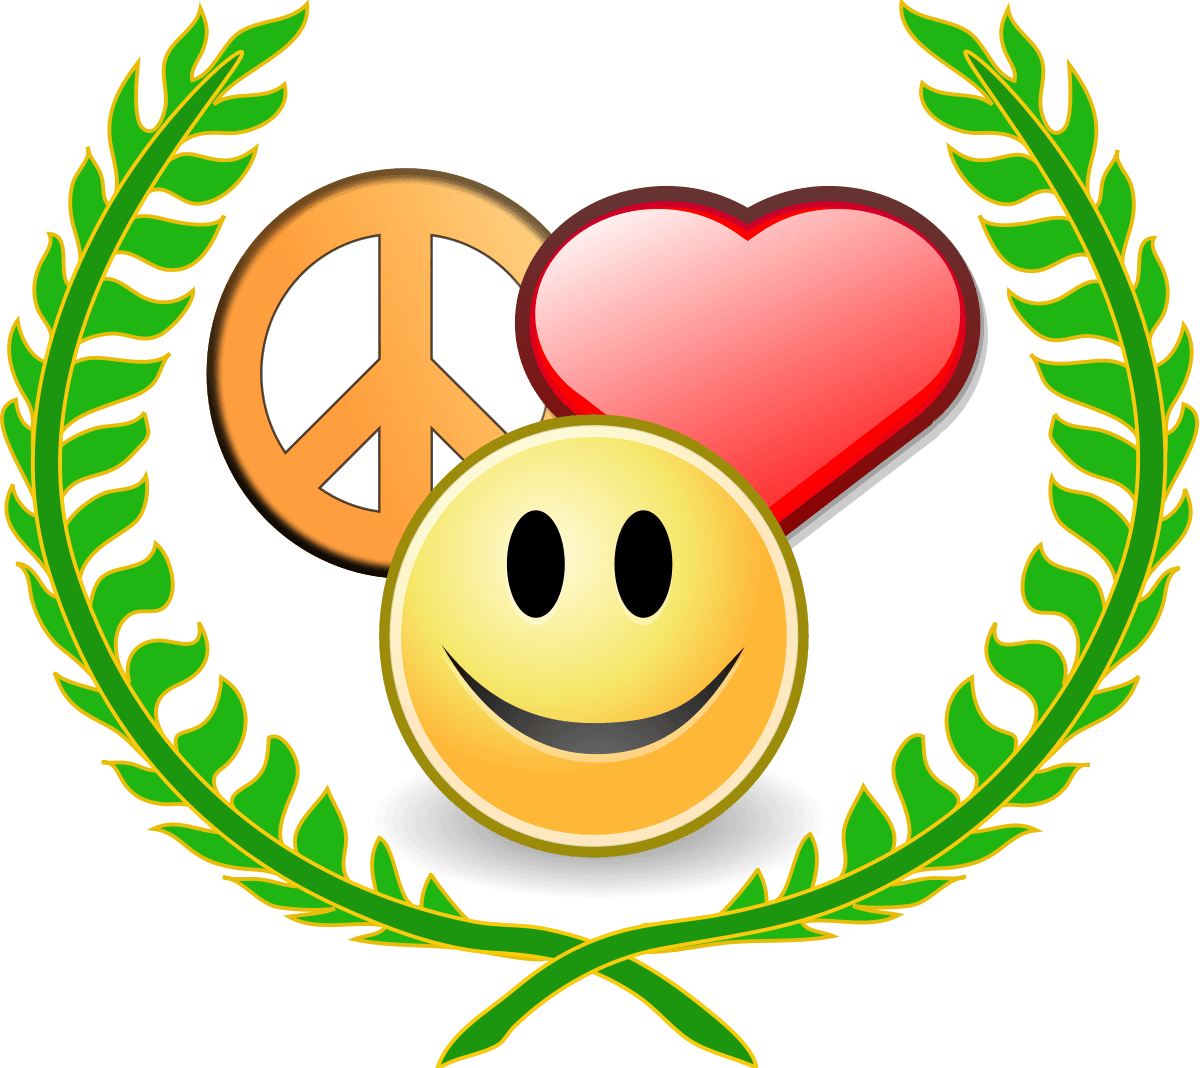 Peace_love_and_happy.png - 361.66 kB